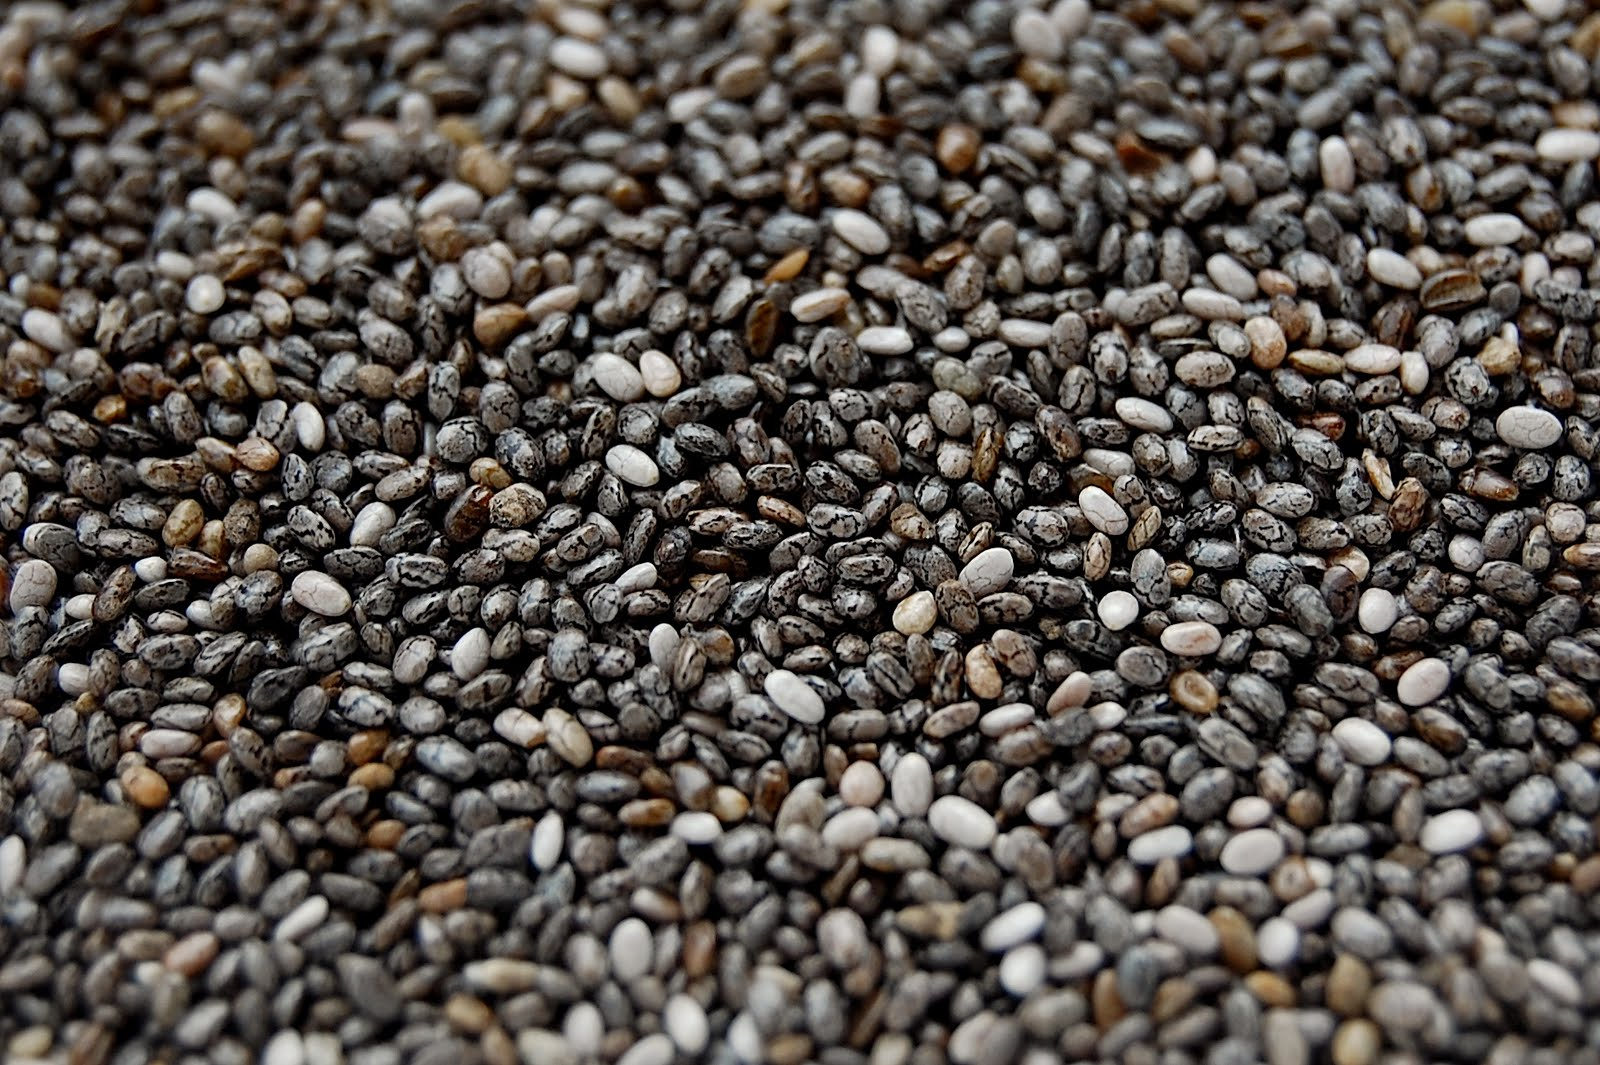 Chia seeds are veg protein